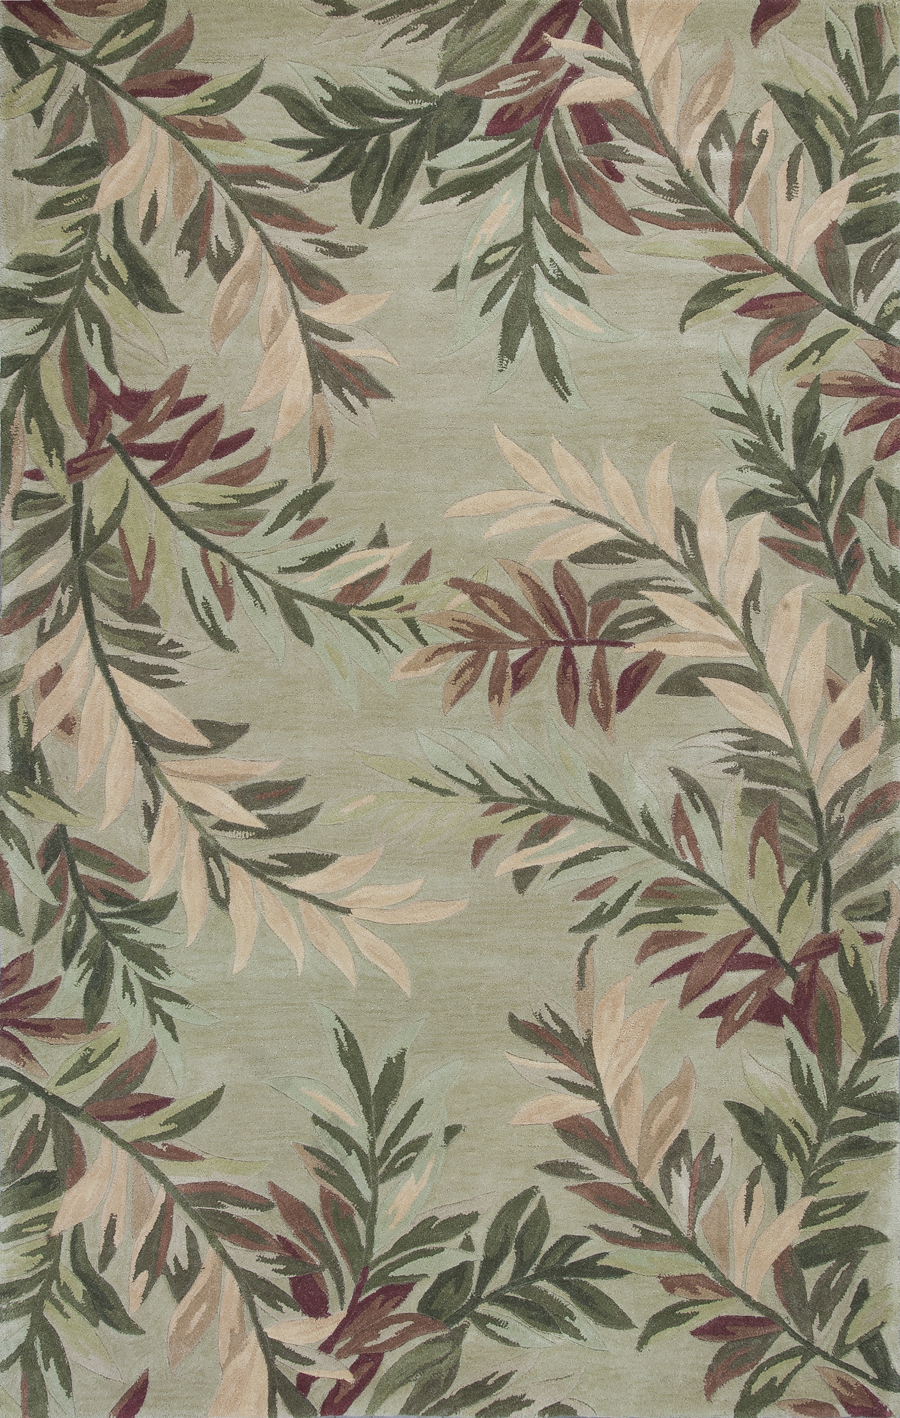 Sparta Tropical Branches 3144 Sage Rug by Kas